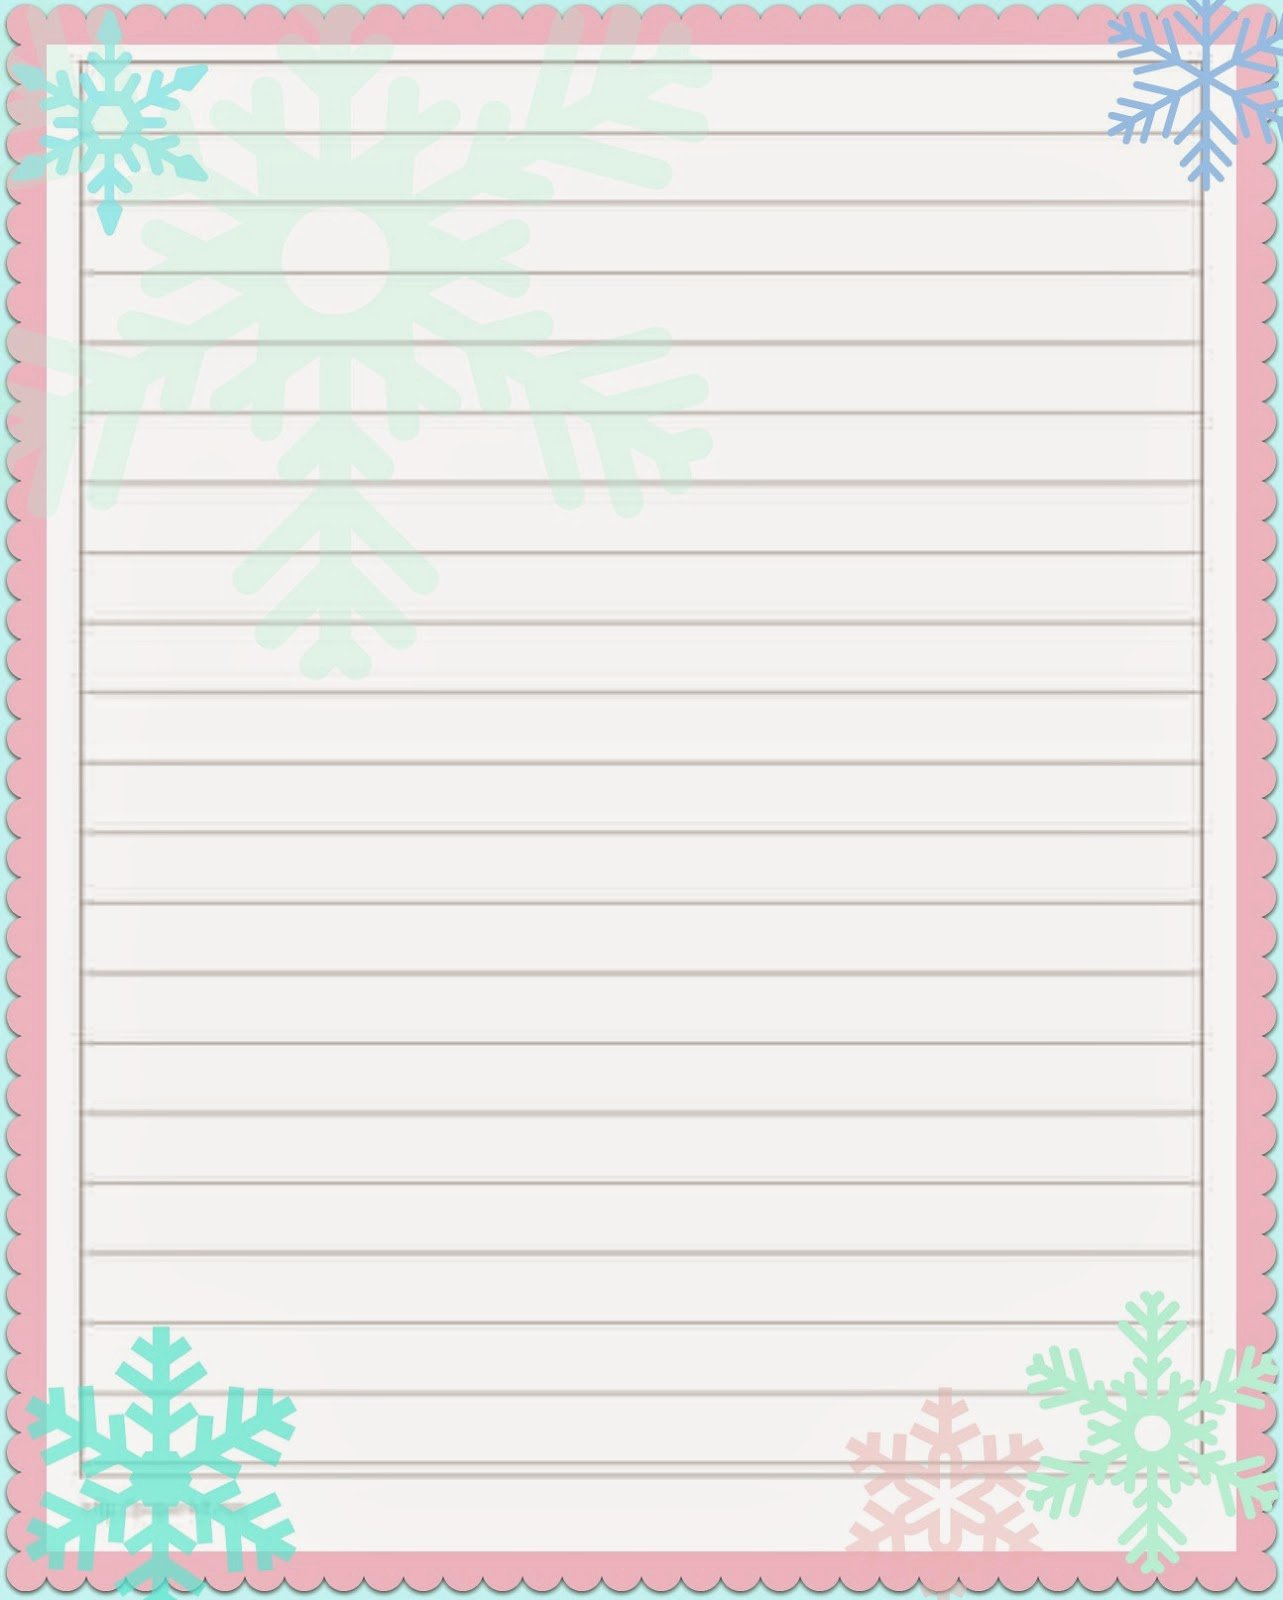 Free Lined Stationery Templates New 29 Of Christmas Paper to Print Out Template